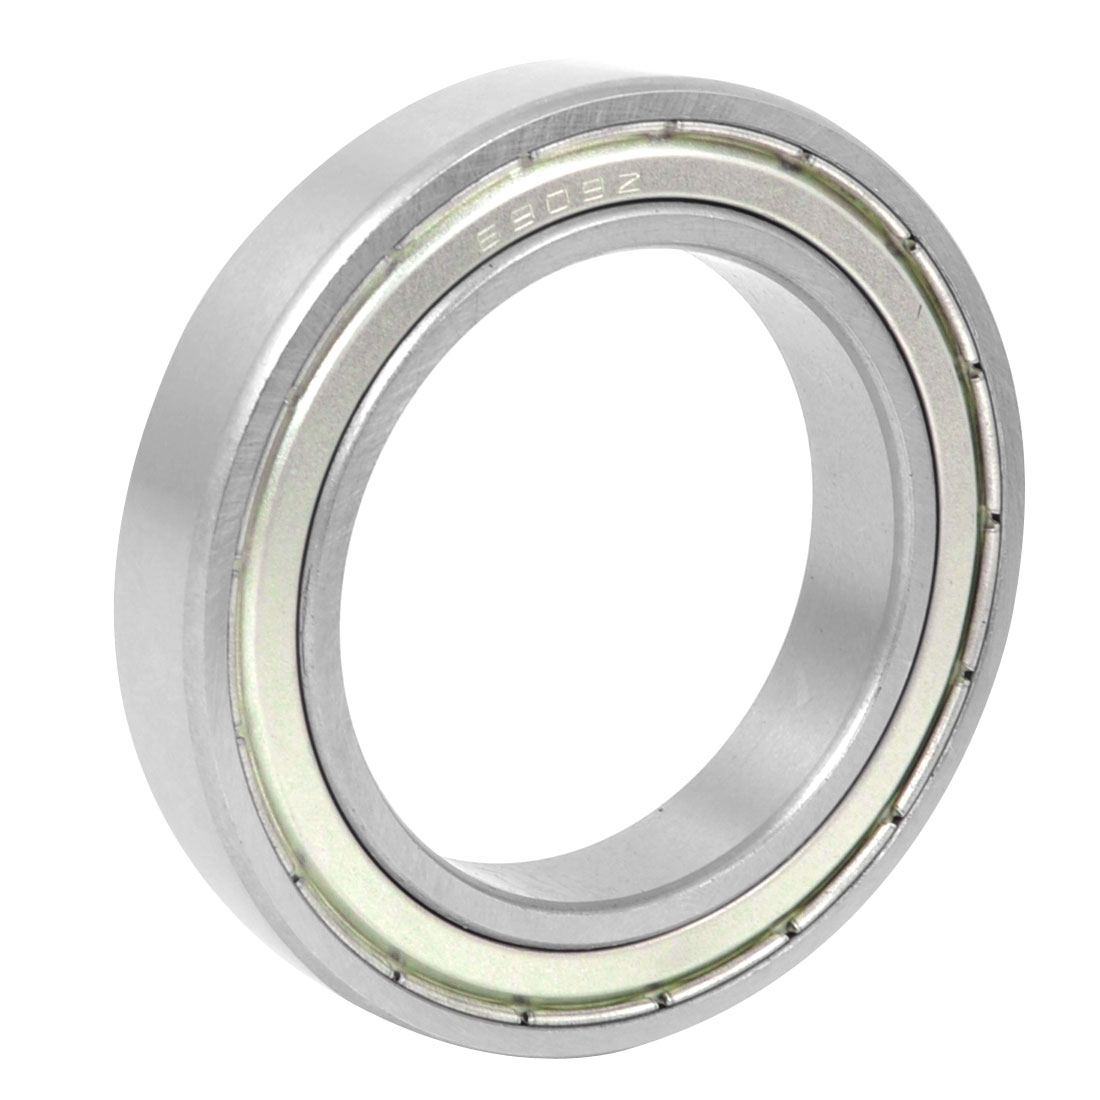 6909-Z Silver Tone Shielded Deep Groove Ball Bearings 45mm x 67mm x 12mm